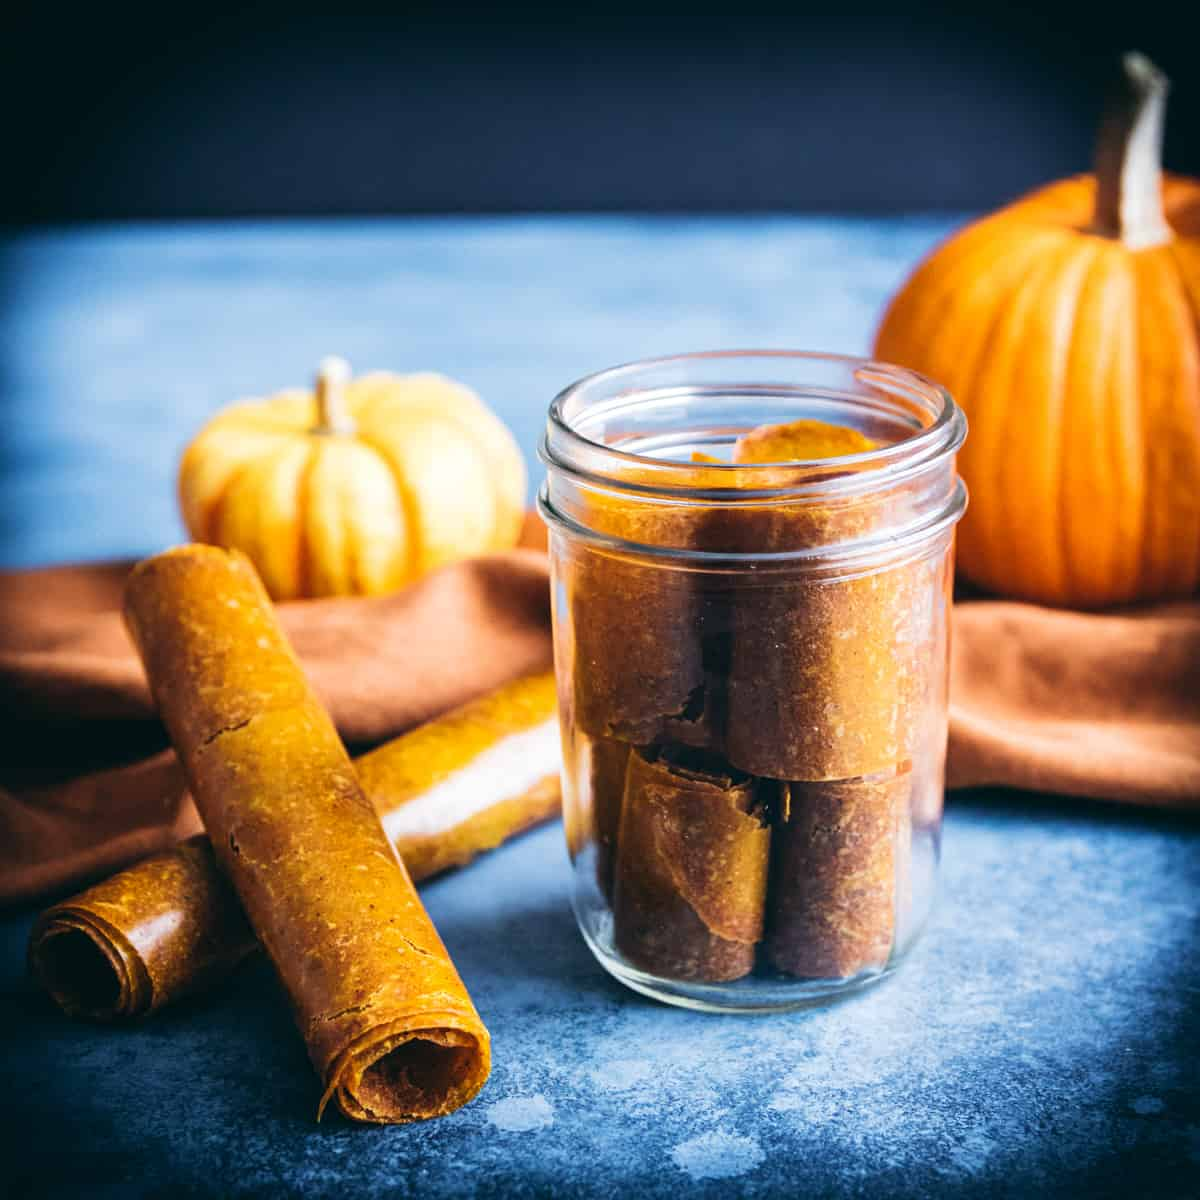 pumpkin leather rolls on a table and in a jar